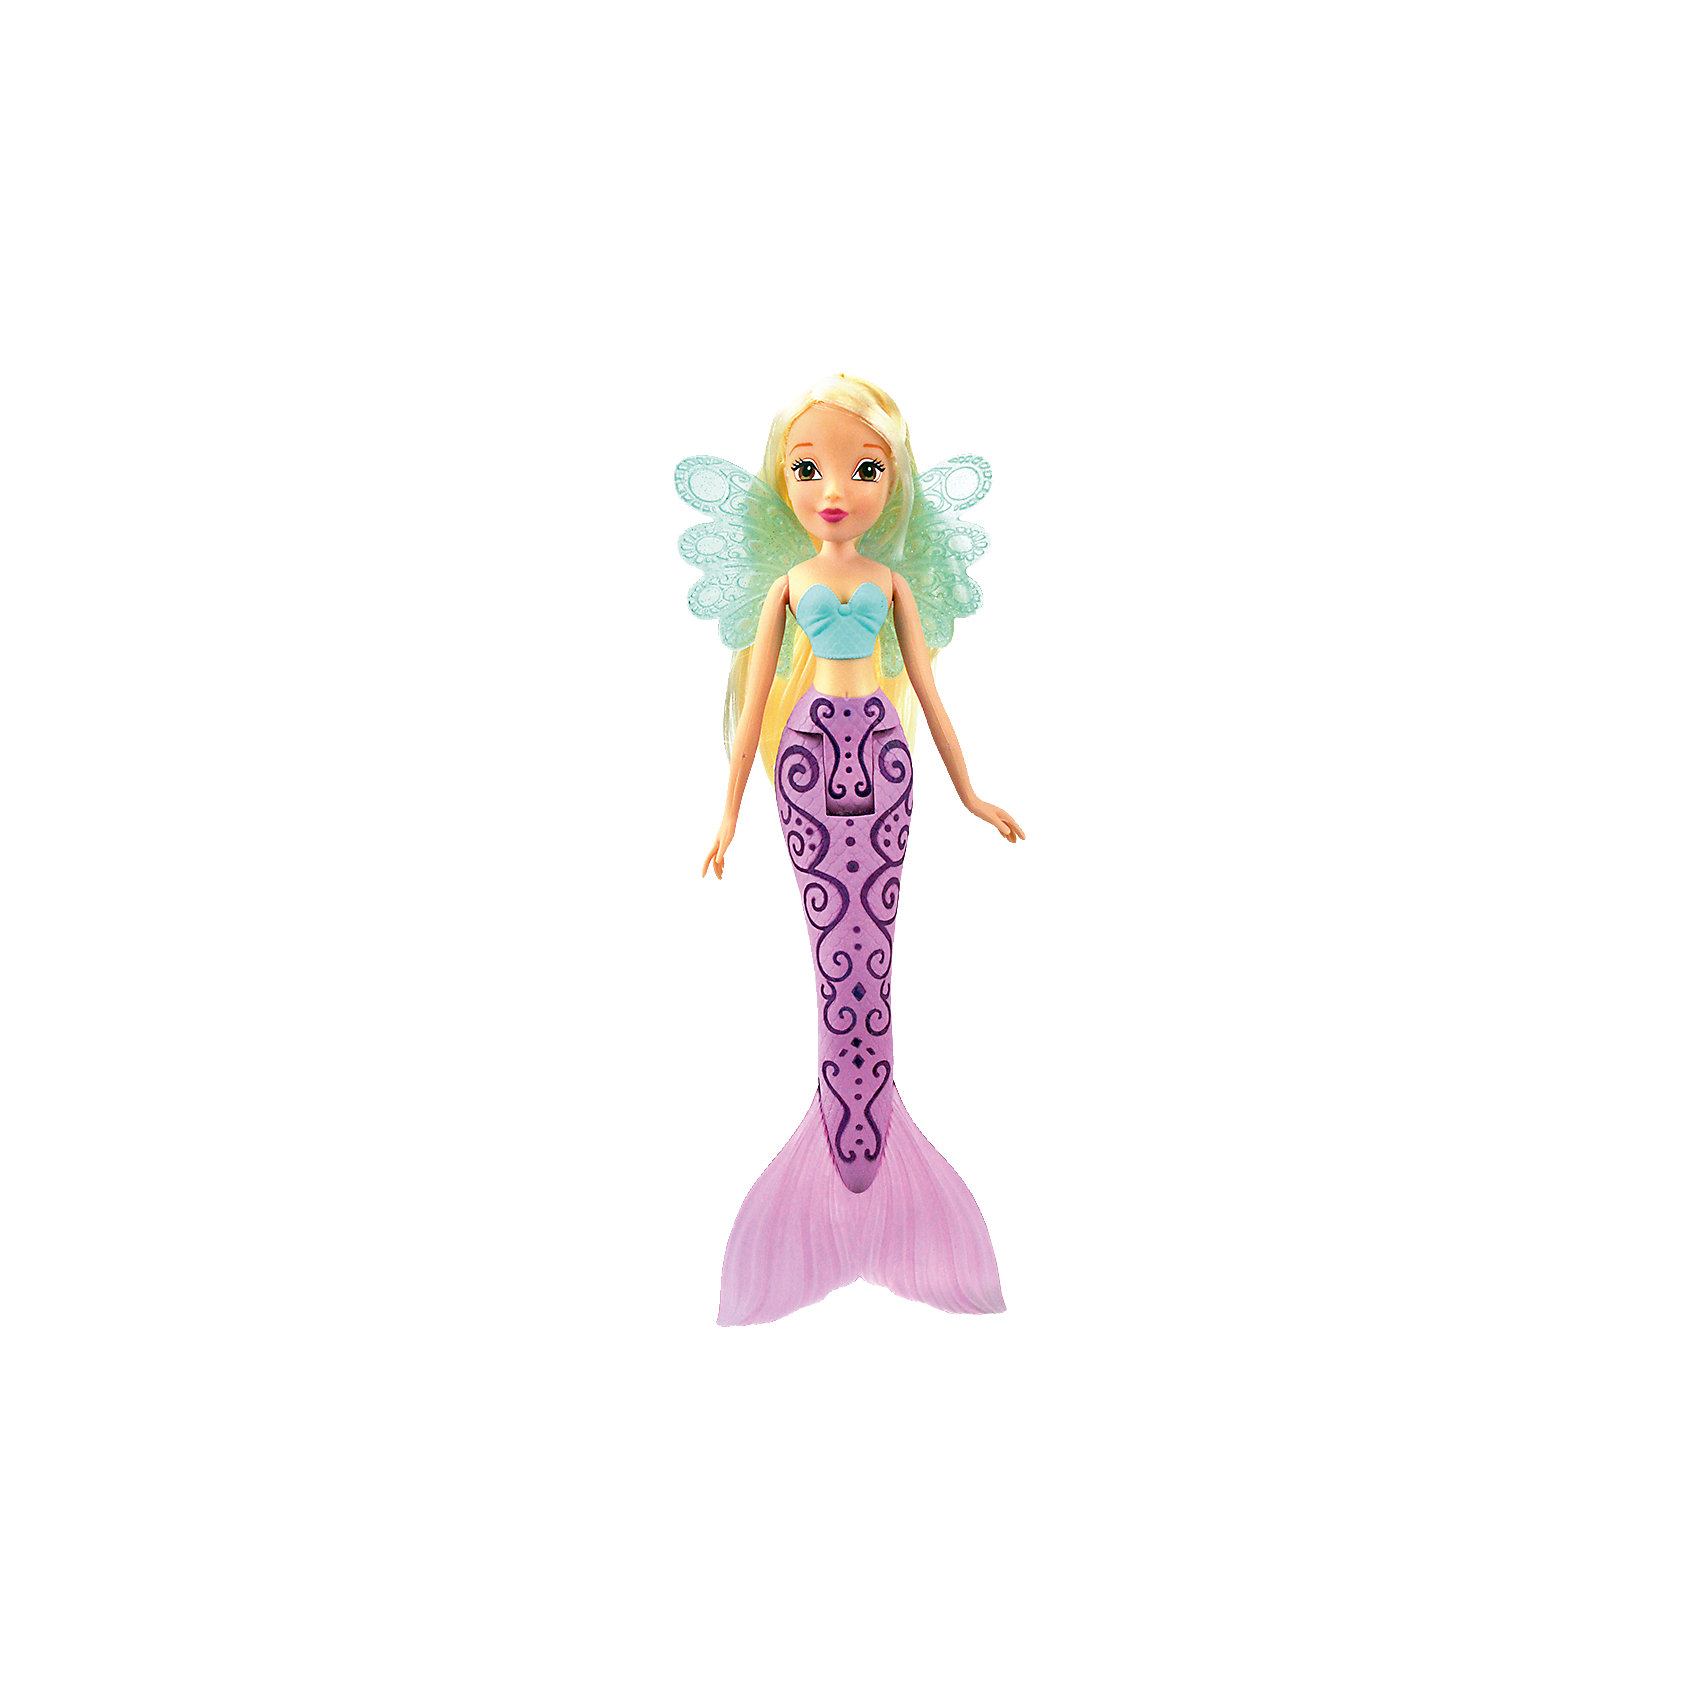 Кукла Стелла Русалочка-2, Winx ClubИгрушки<br>Doll Winx Club The Little Mermaid-2, Stella<br><br>Ширина мм: 60<br>Глубина мм: 350<br>Высота мм: 150<br>Вес г: 240<br>Возраст от месяцев: 36<br>Возраст до месяцев: 120<br>Пол: Женский<br>Возраст: Детский<br>SKU: 5532639